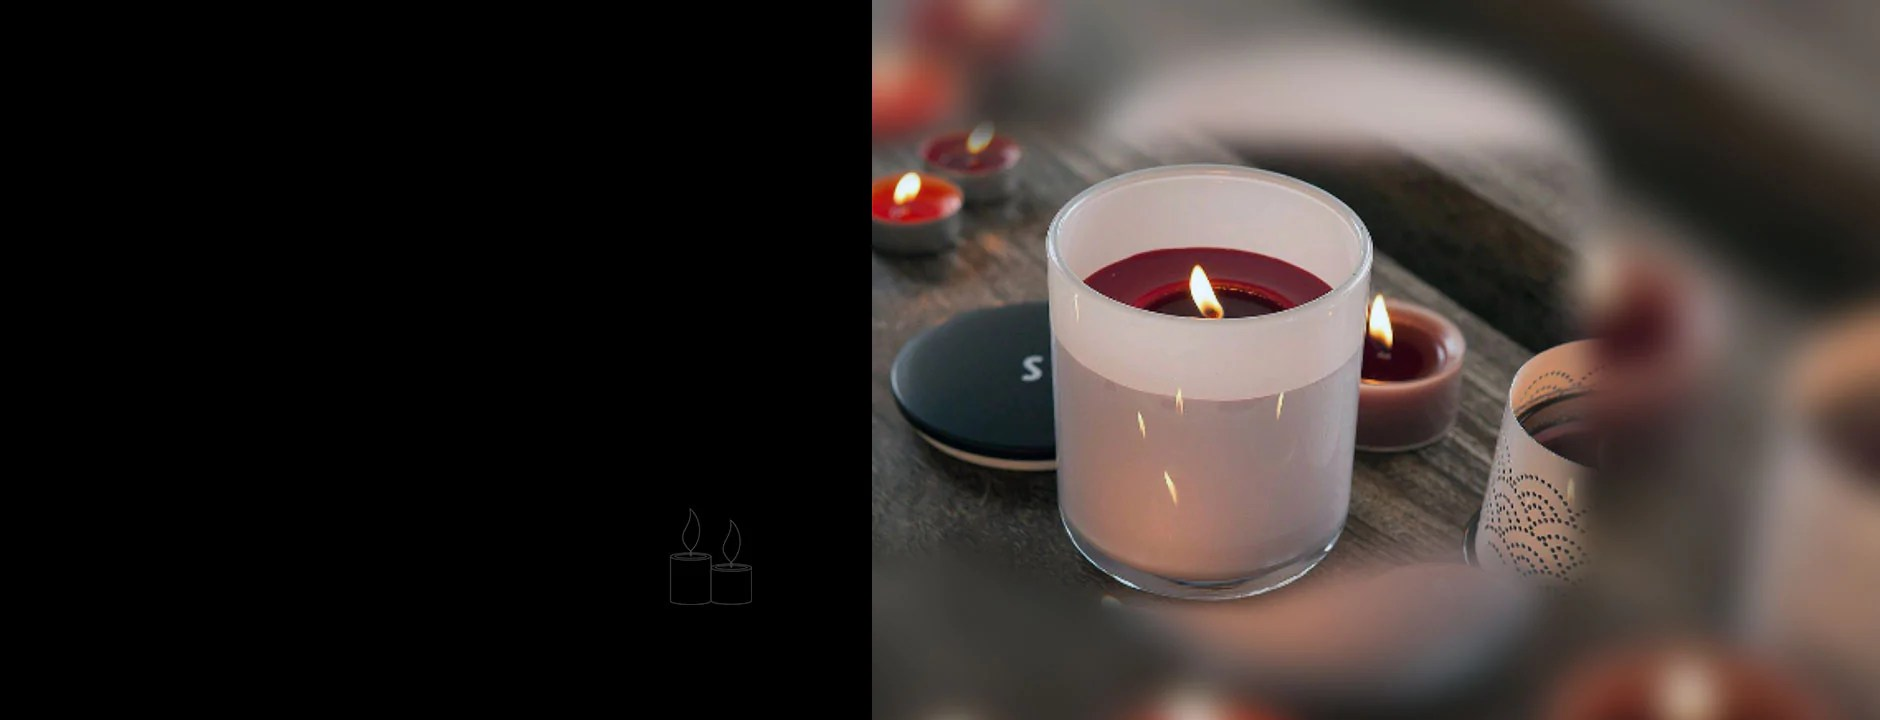 Buy Candles Online Buy Candles Online Scented Unscented Candles For The Home